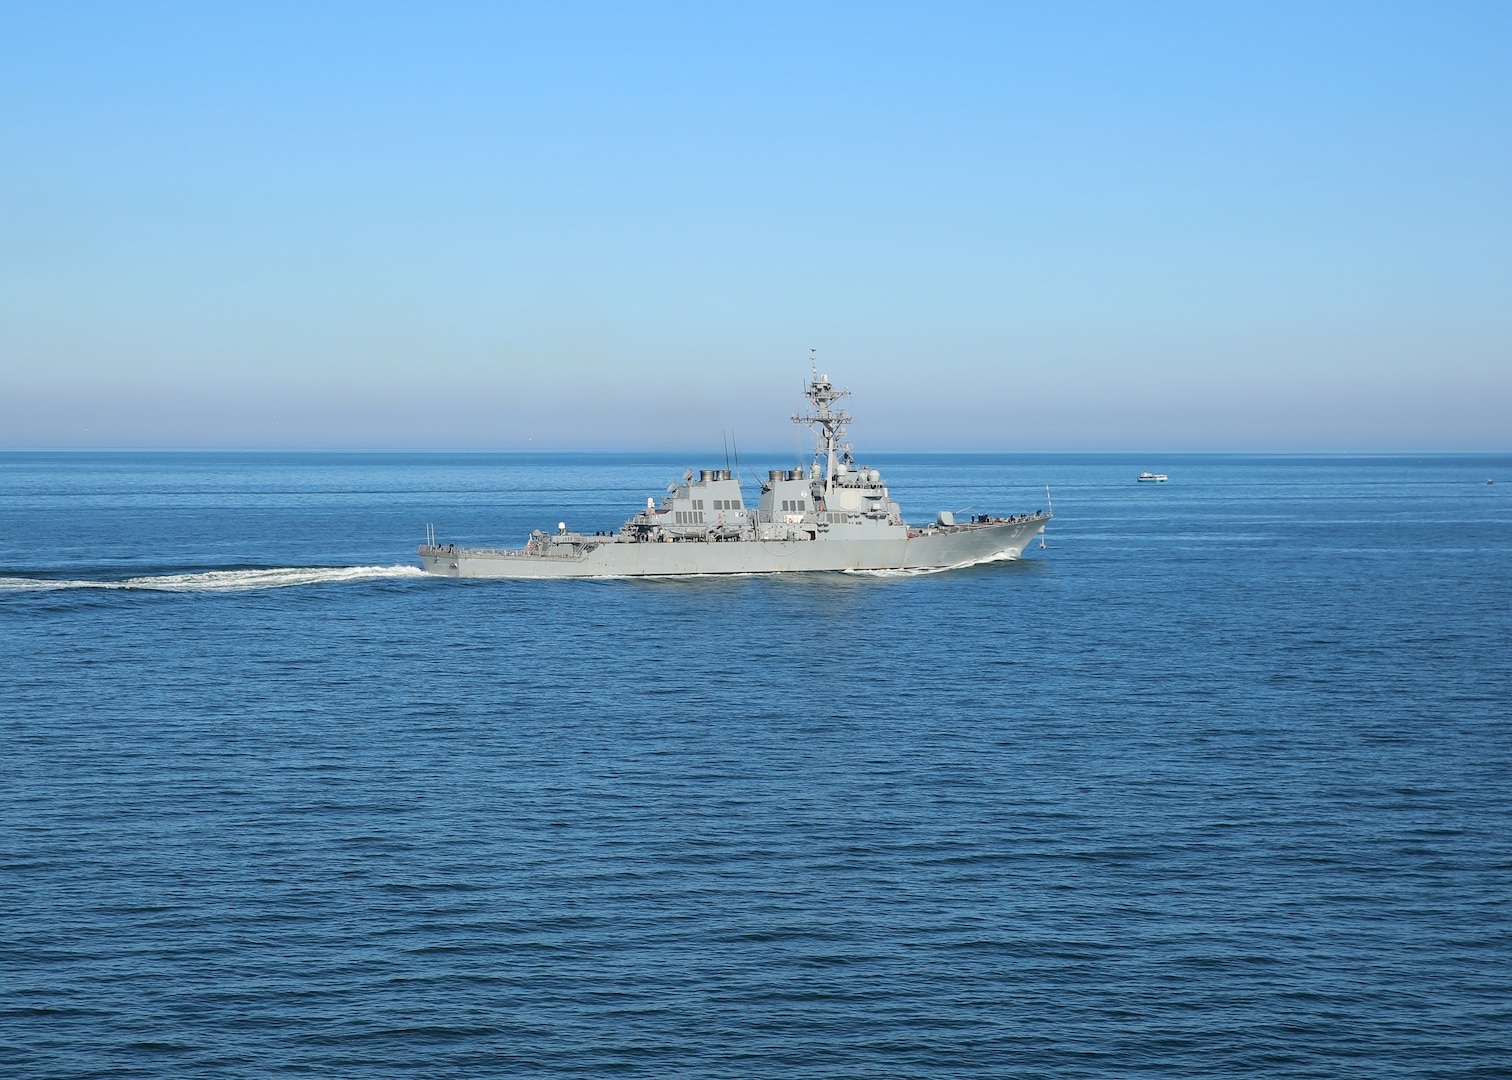 170220-N-OH262-328  NORFOLK (Feb. 20, 2017) The guided-missile destroyer USS Mitscher (DDG 57) transits the Atlantic Ocean. (U.S. Navy photo by Bill Mesta/Released)